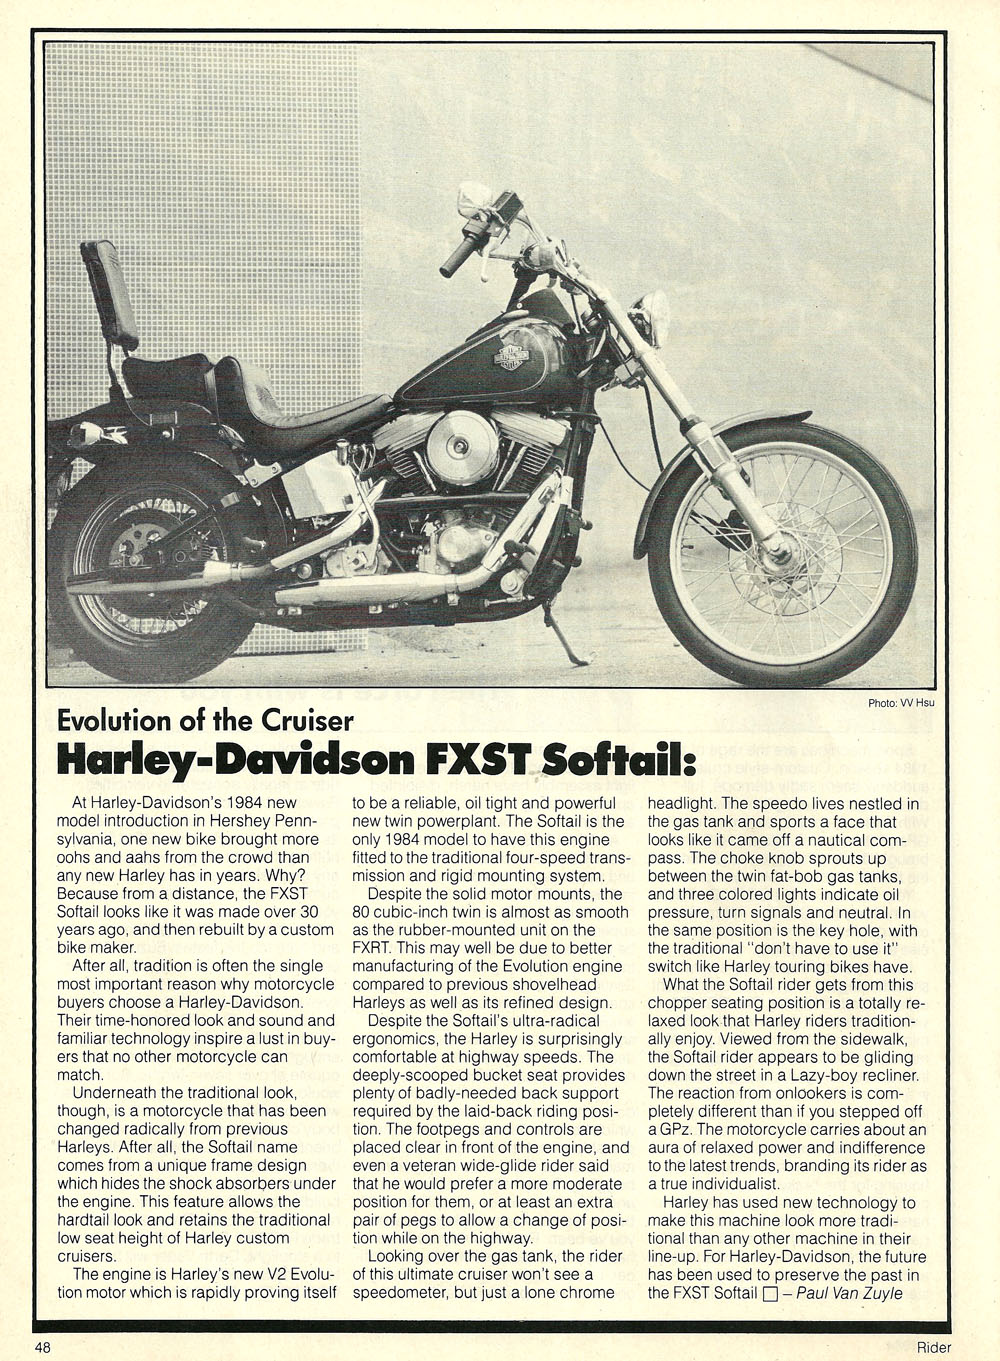 1984 bmw r80rt vs harley fxrt vs suzuki gs1100 road test 07.jpg